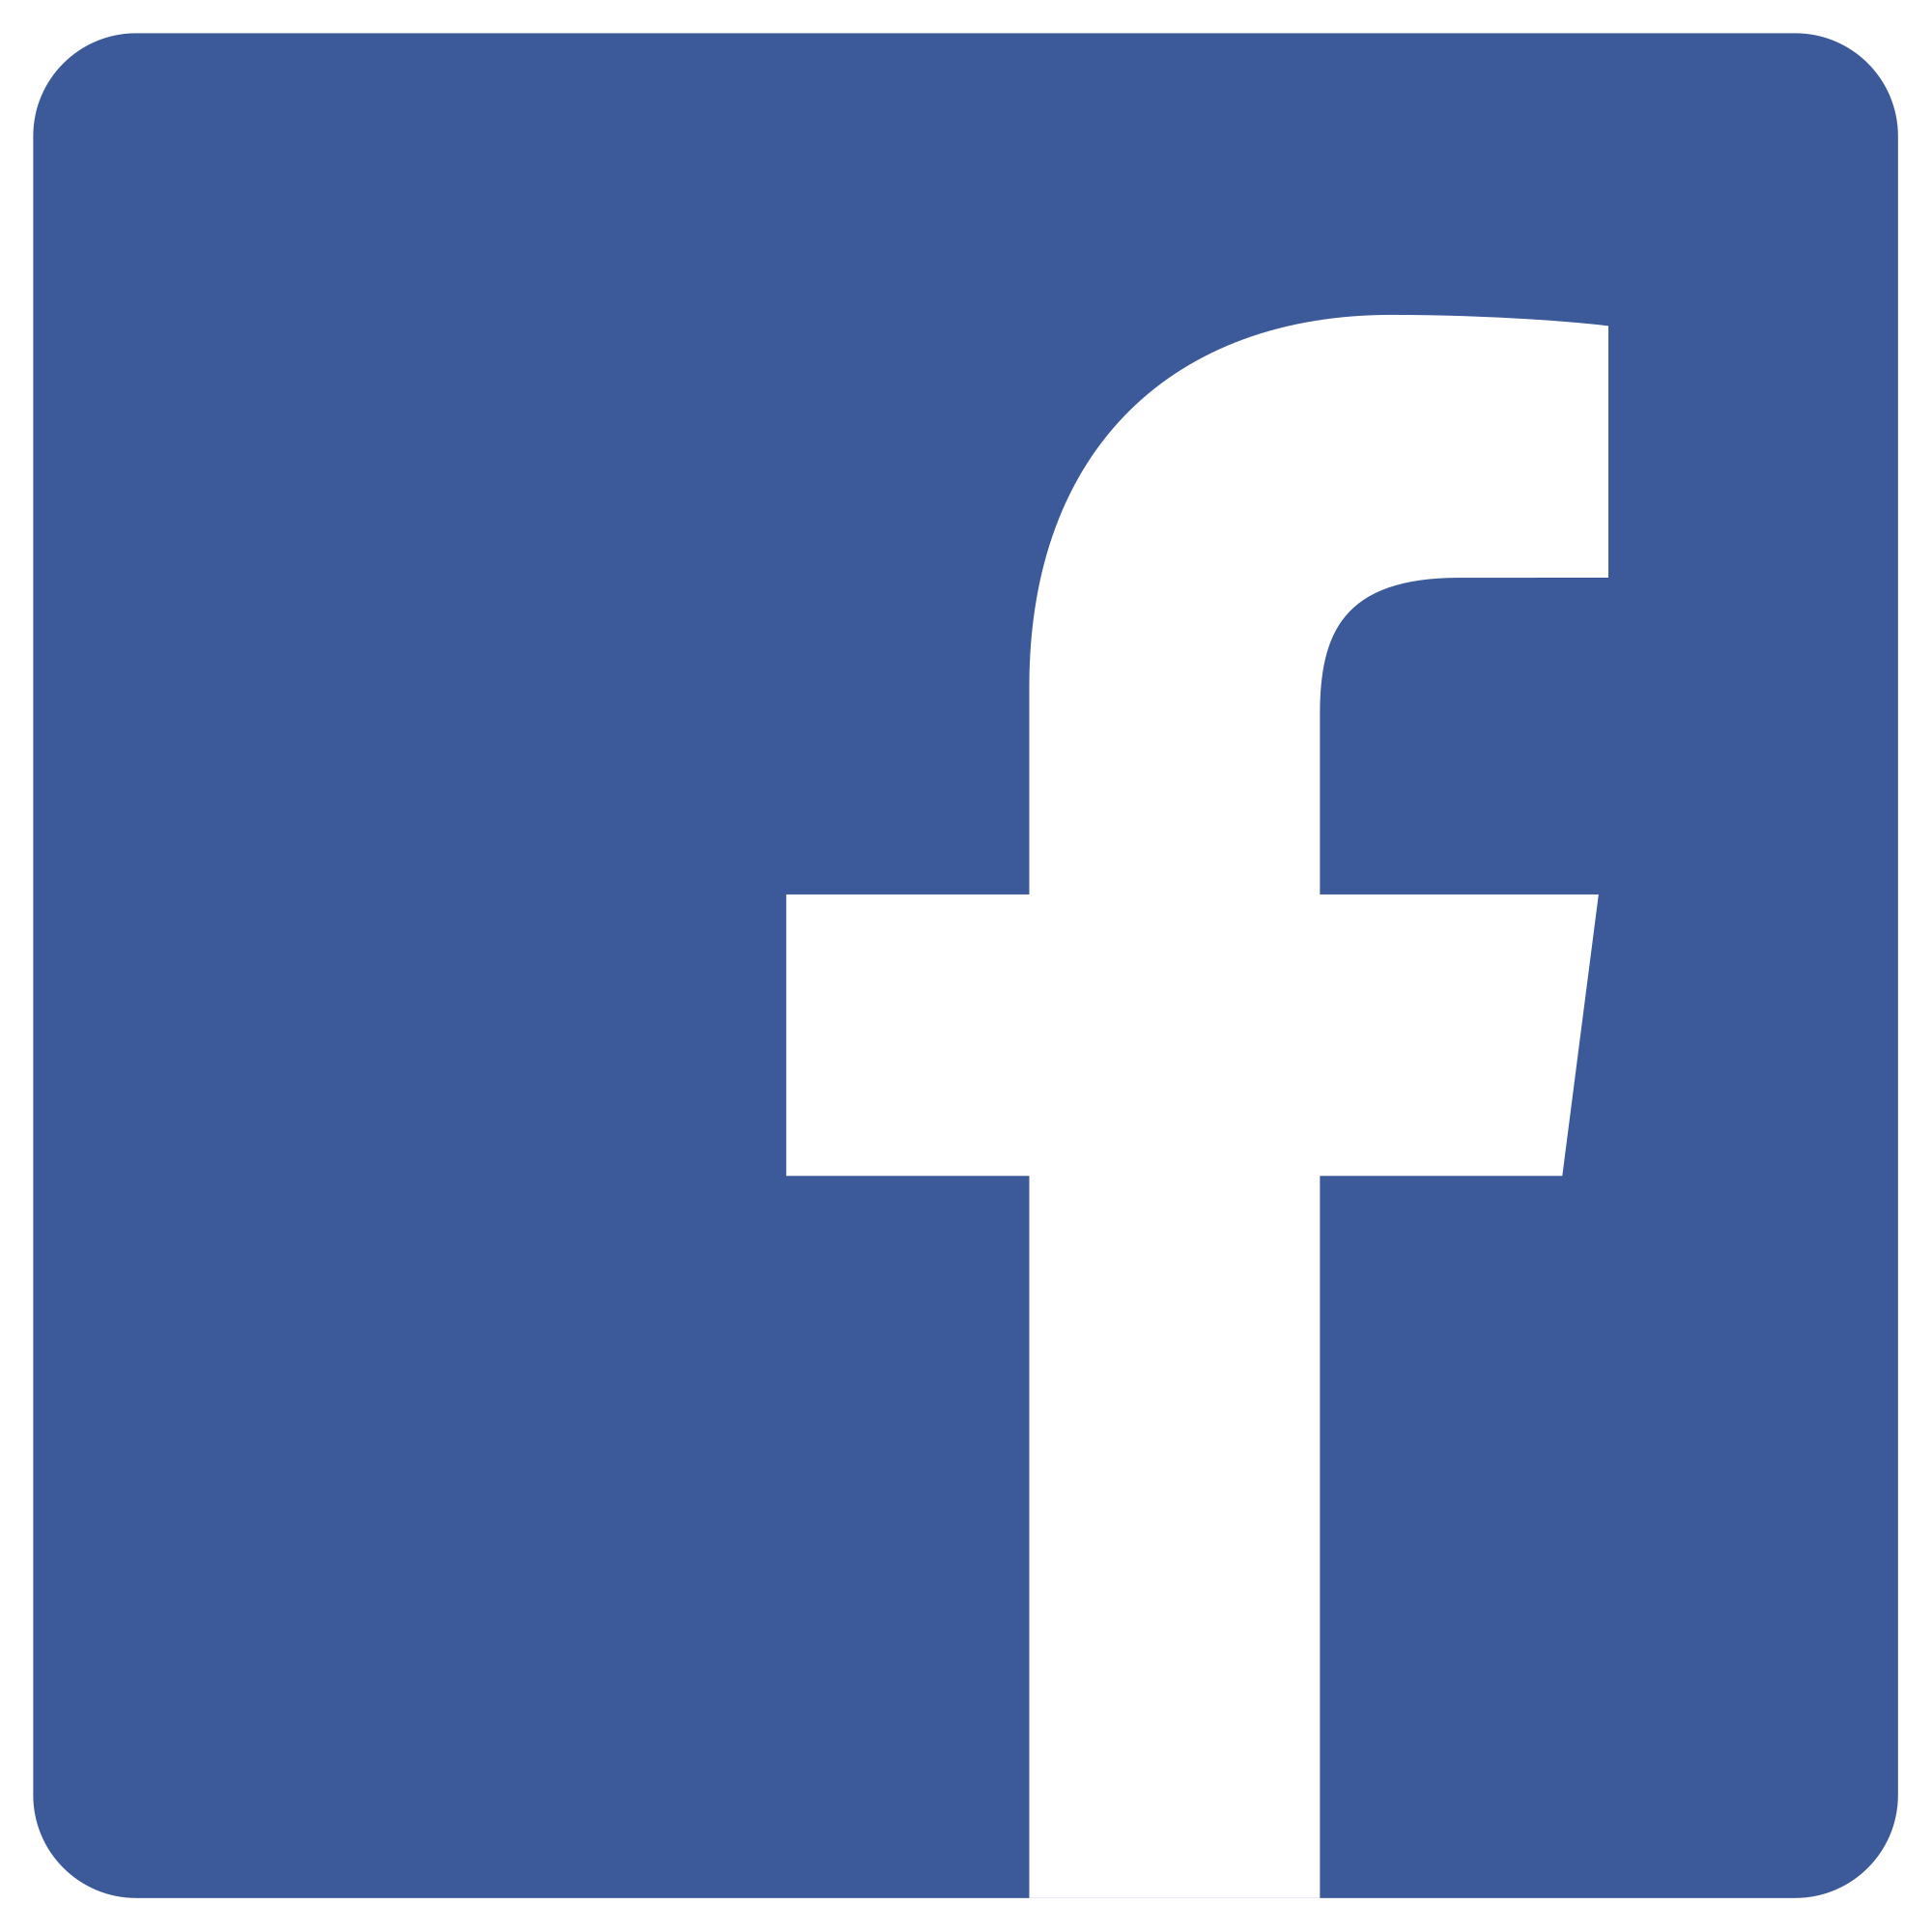 Facebook Review Link Icon